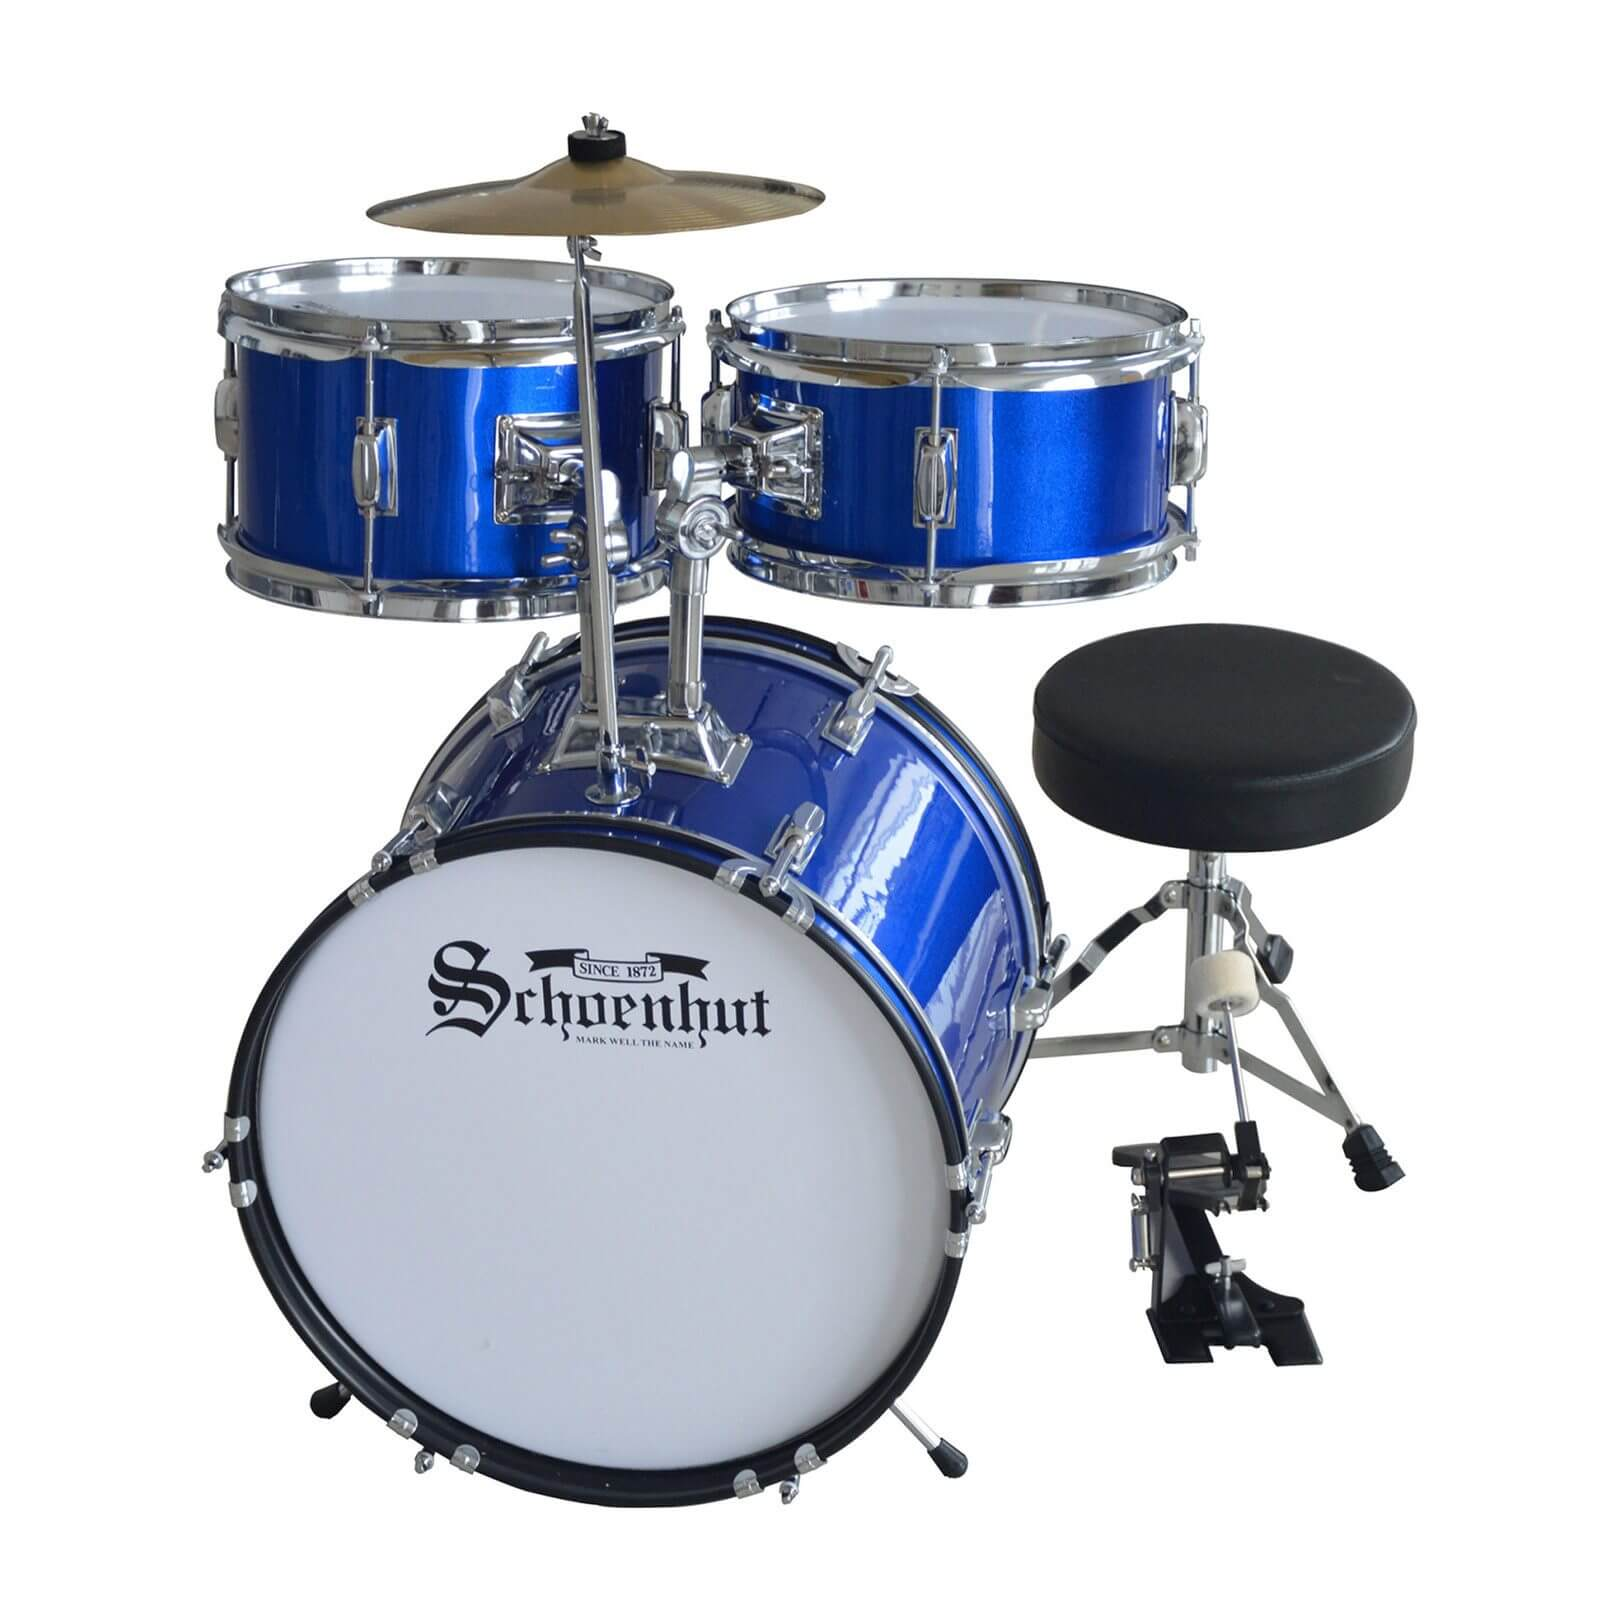 Schoenhut Five-Piece Drum Set